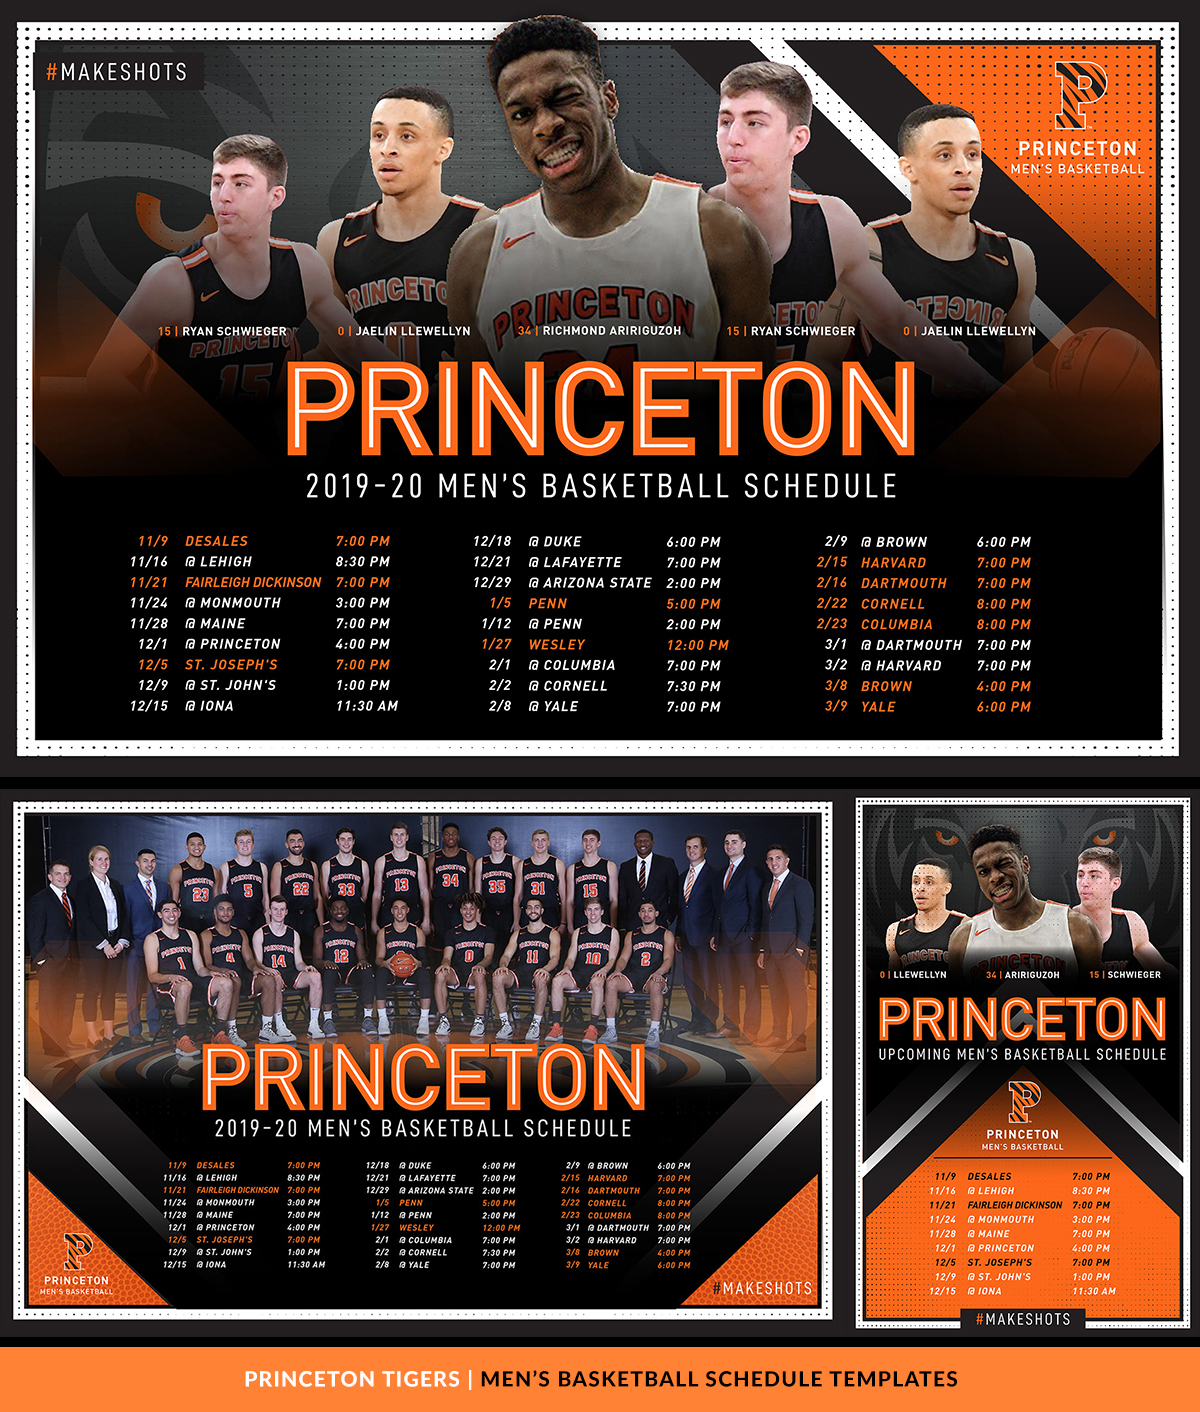 Princeton Tigers Athletic Brand Templates